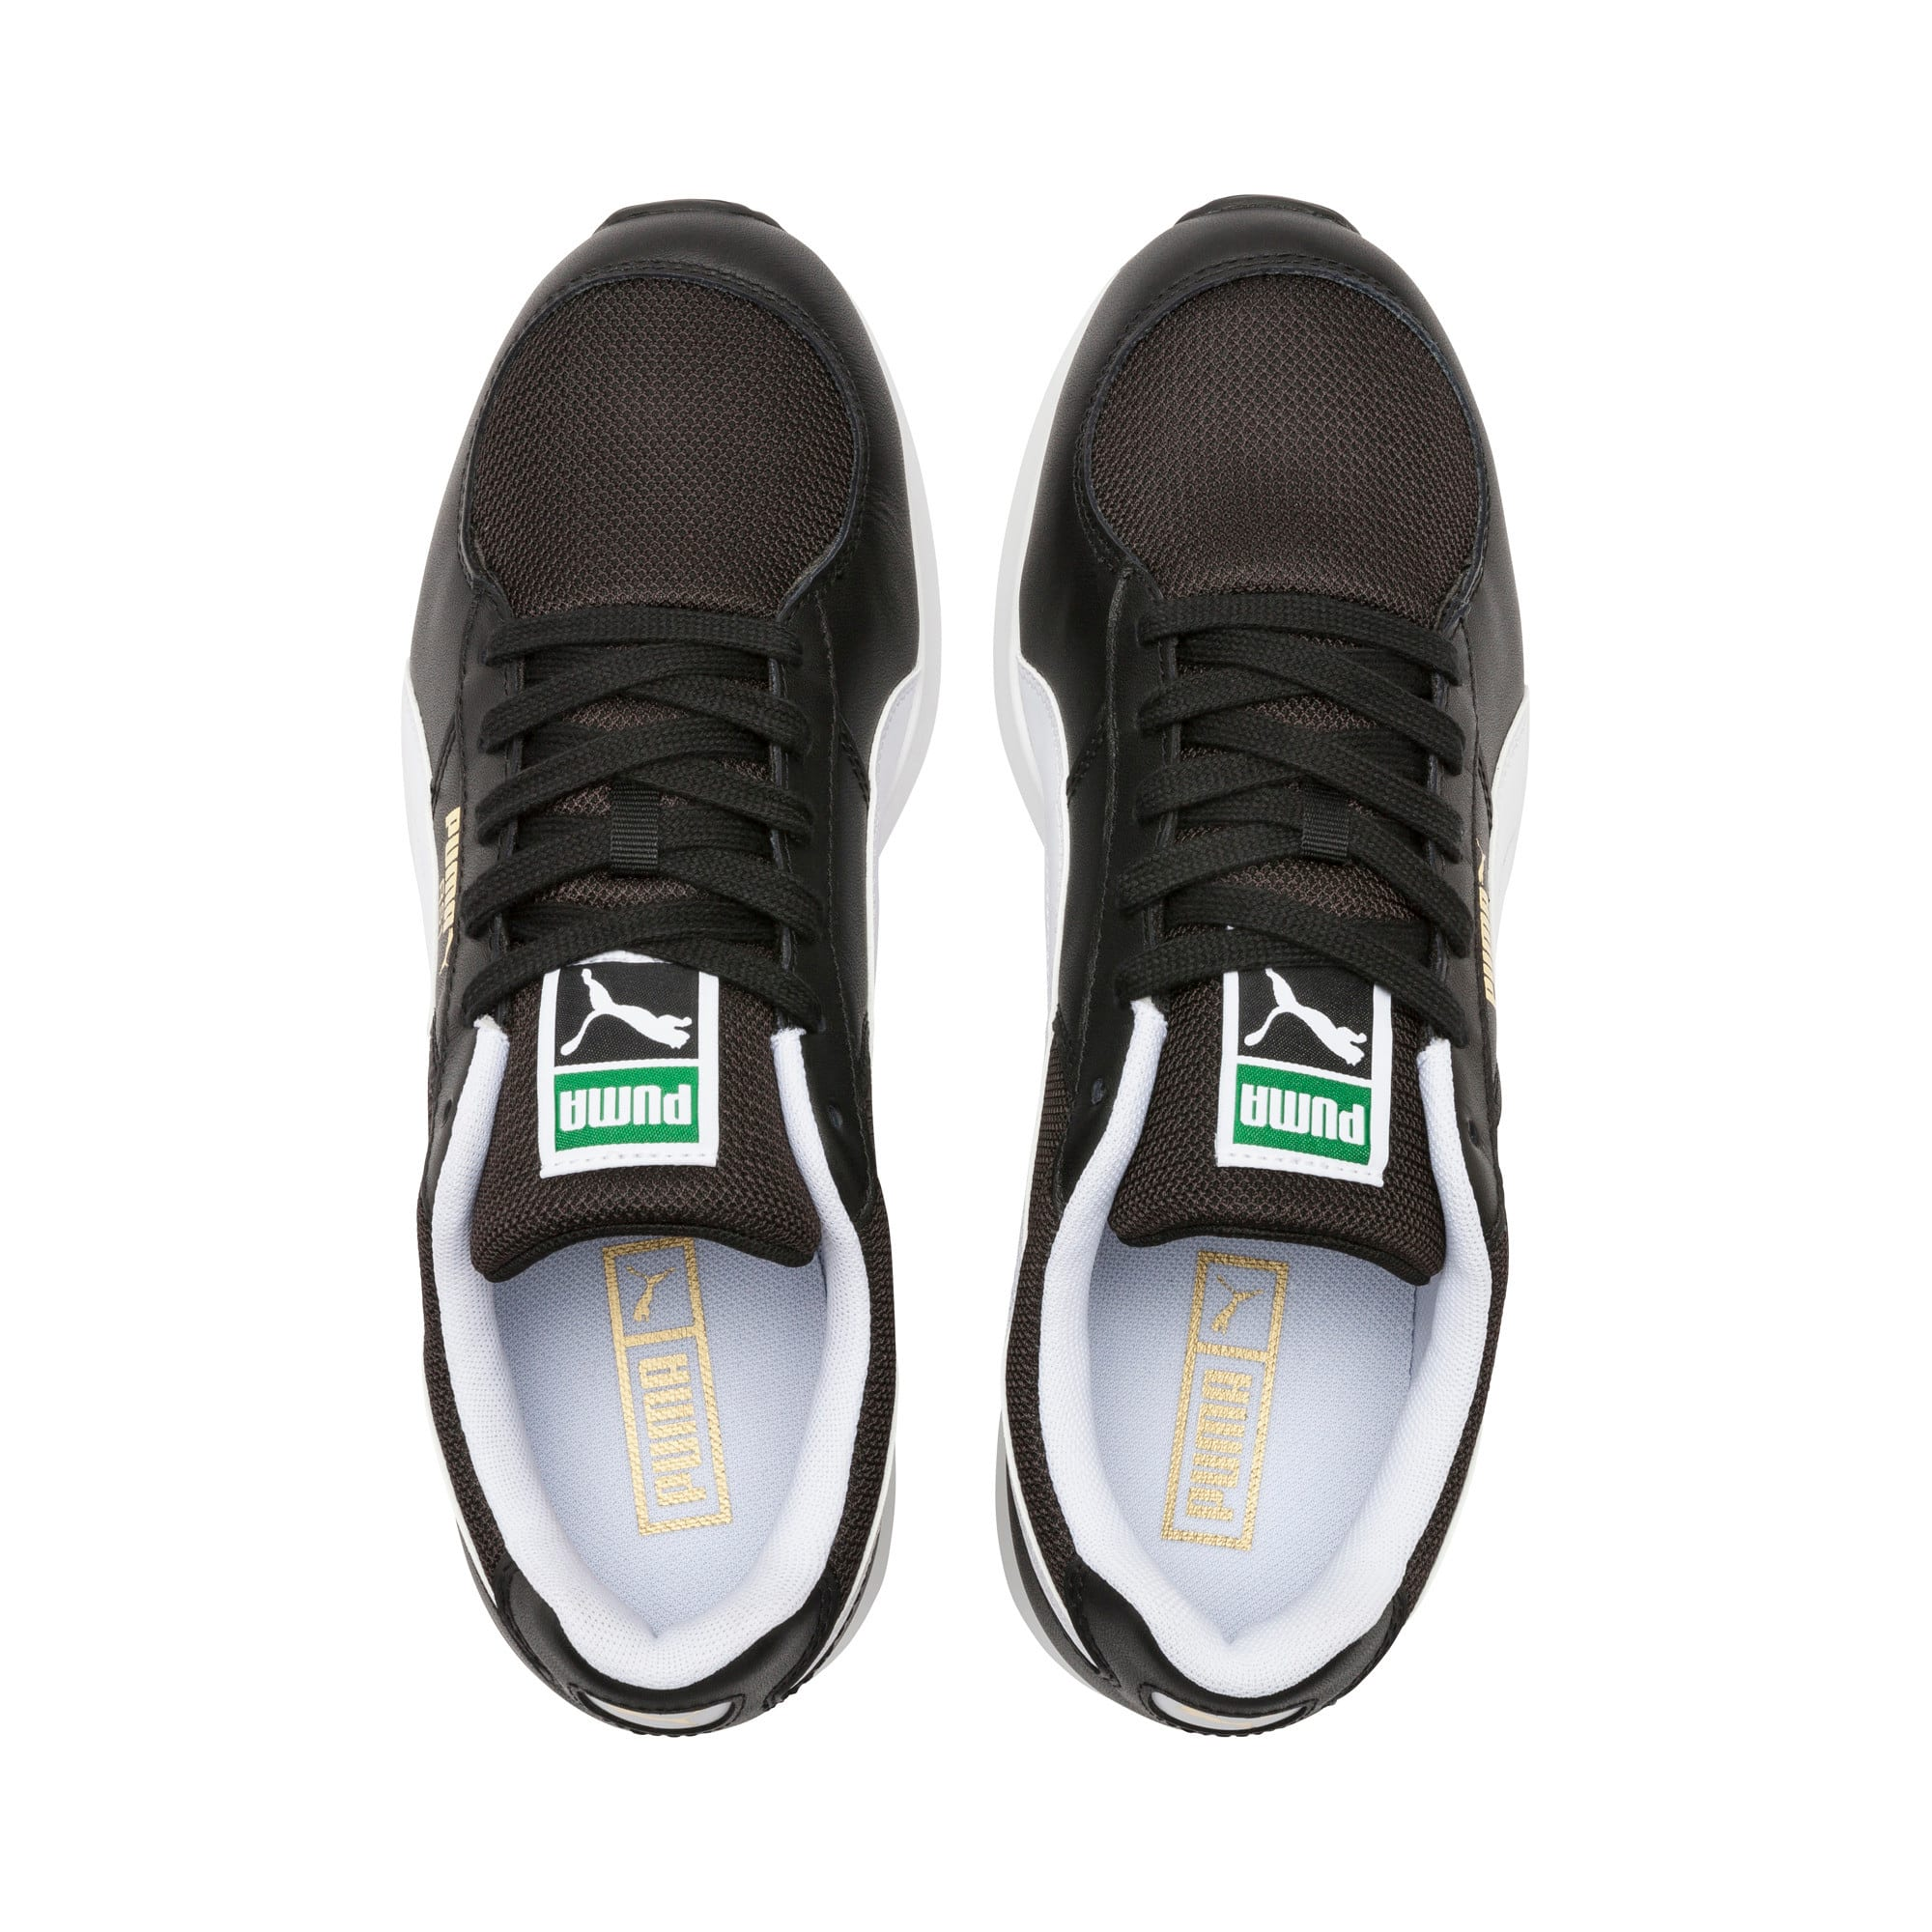 Thumbnail 6 of RS-1 OG Trainers, Puma Black-CASTLEROCK, medium